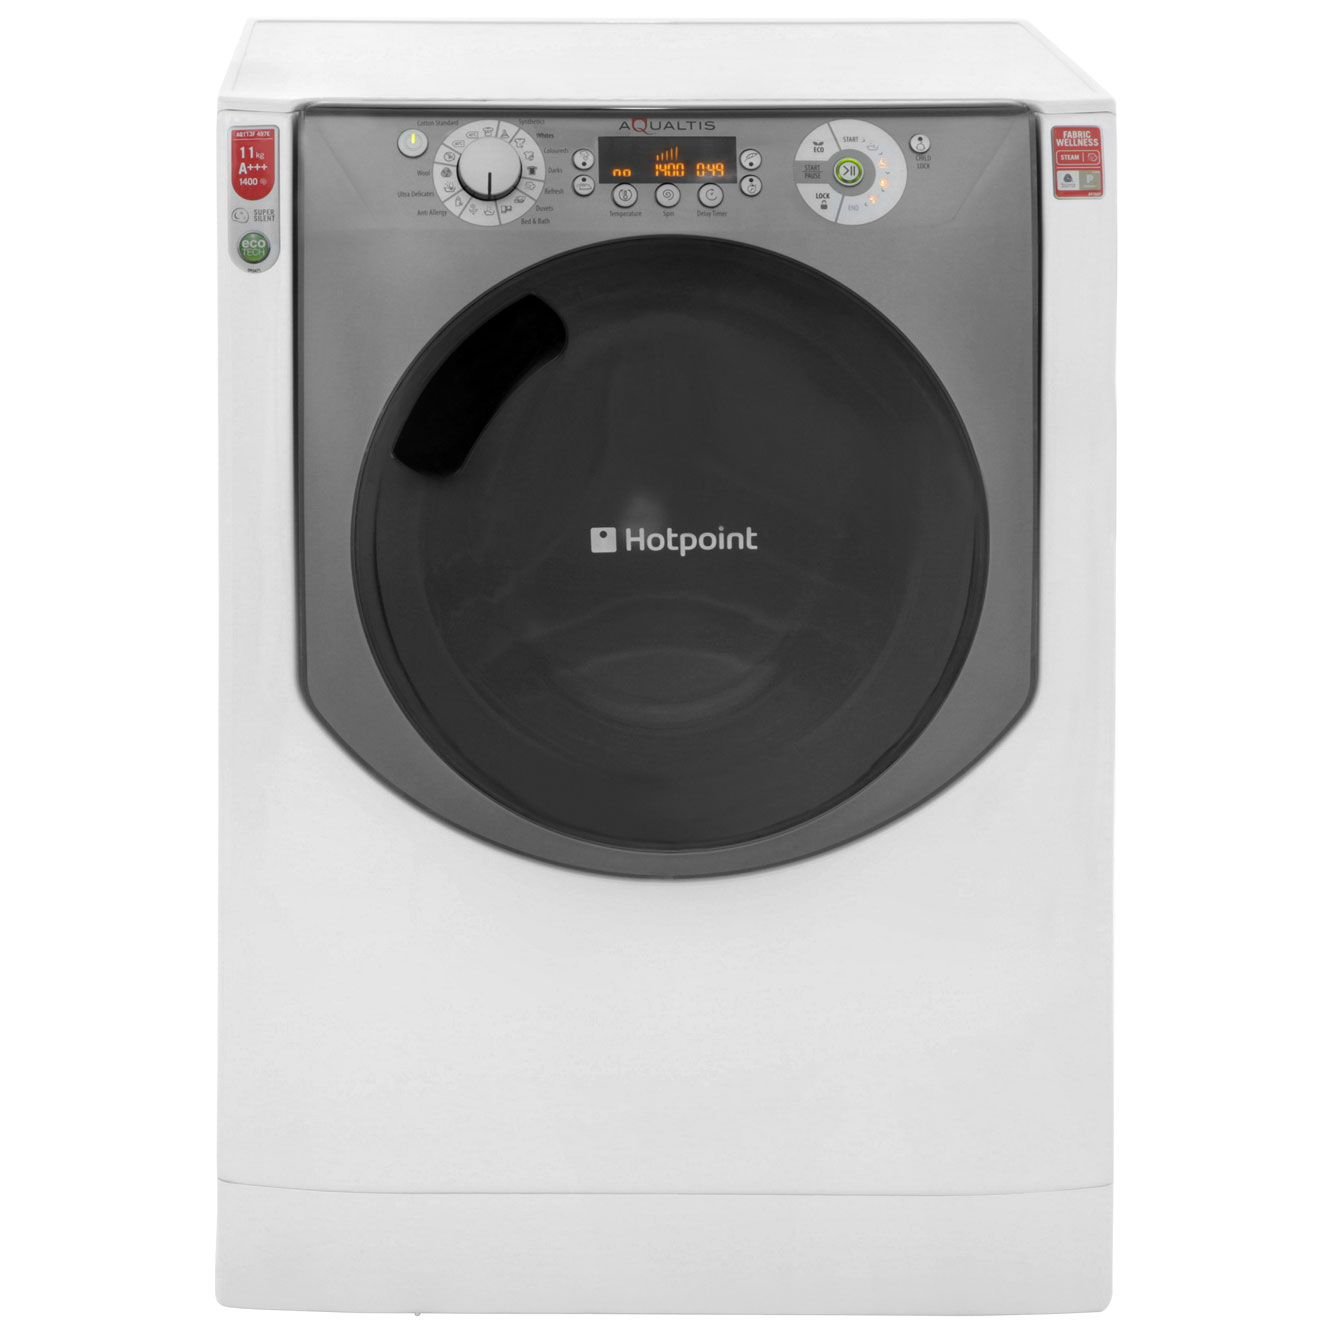 Hotpoint Aqualtis AQ113F497E 11Kg Washing Machine with 1400 rpm - White / Tungsten